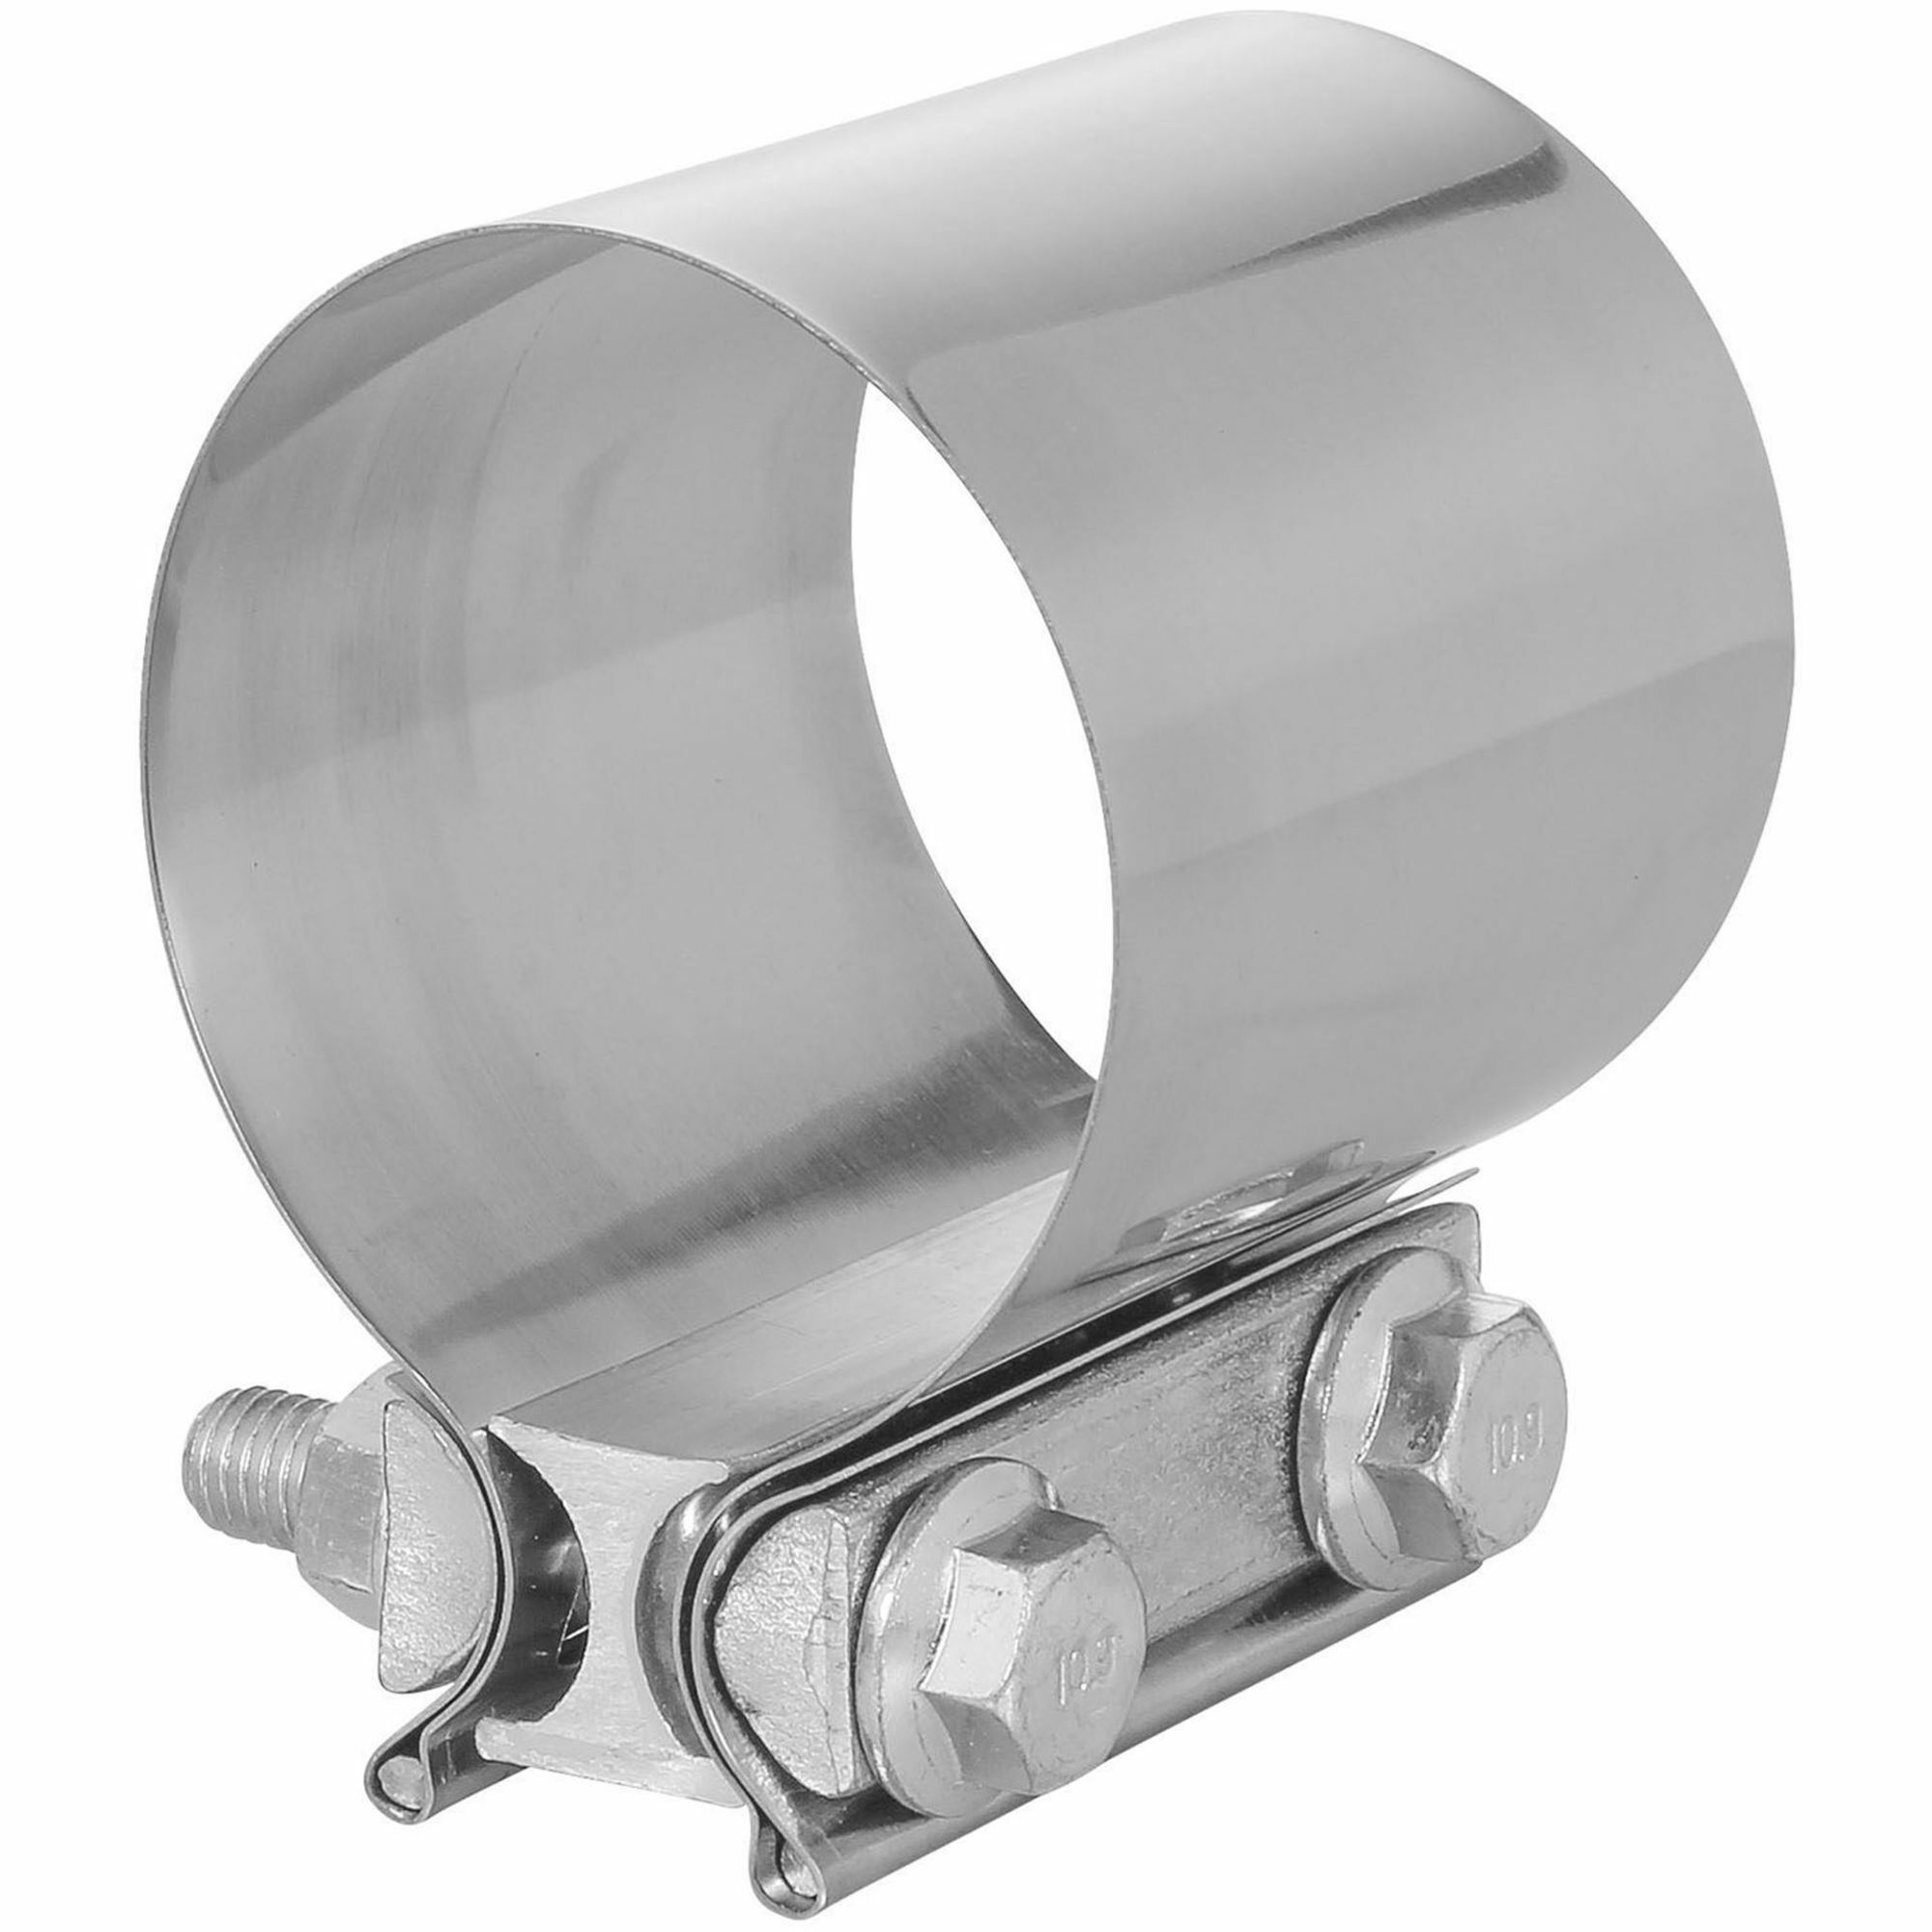 TOTALFLOW TF-JB57 Butt Joint Exhaust Muffler Clamp Band | 2.25 Inch